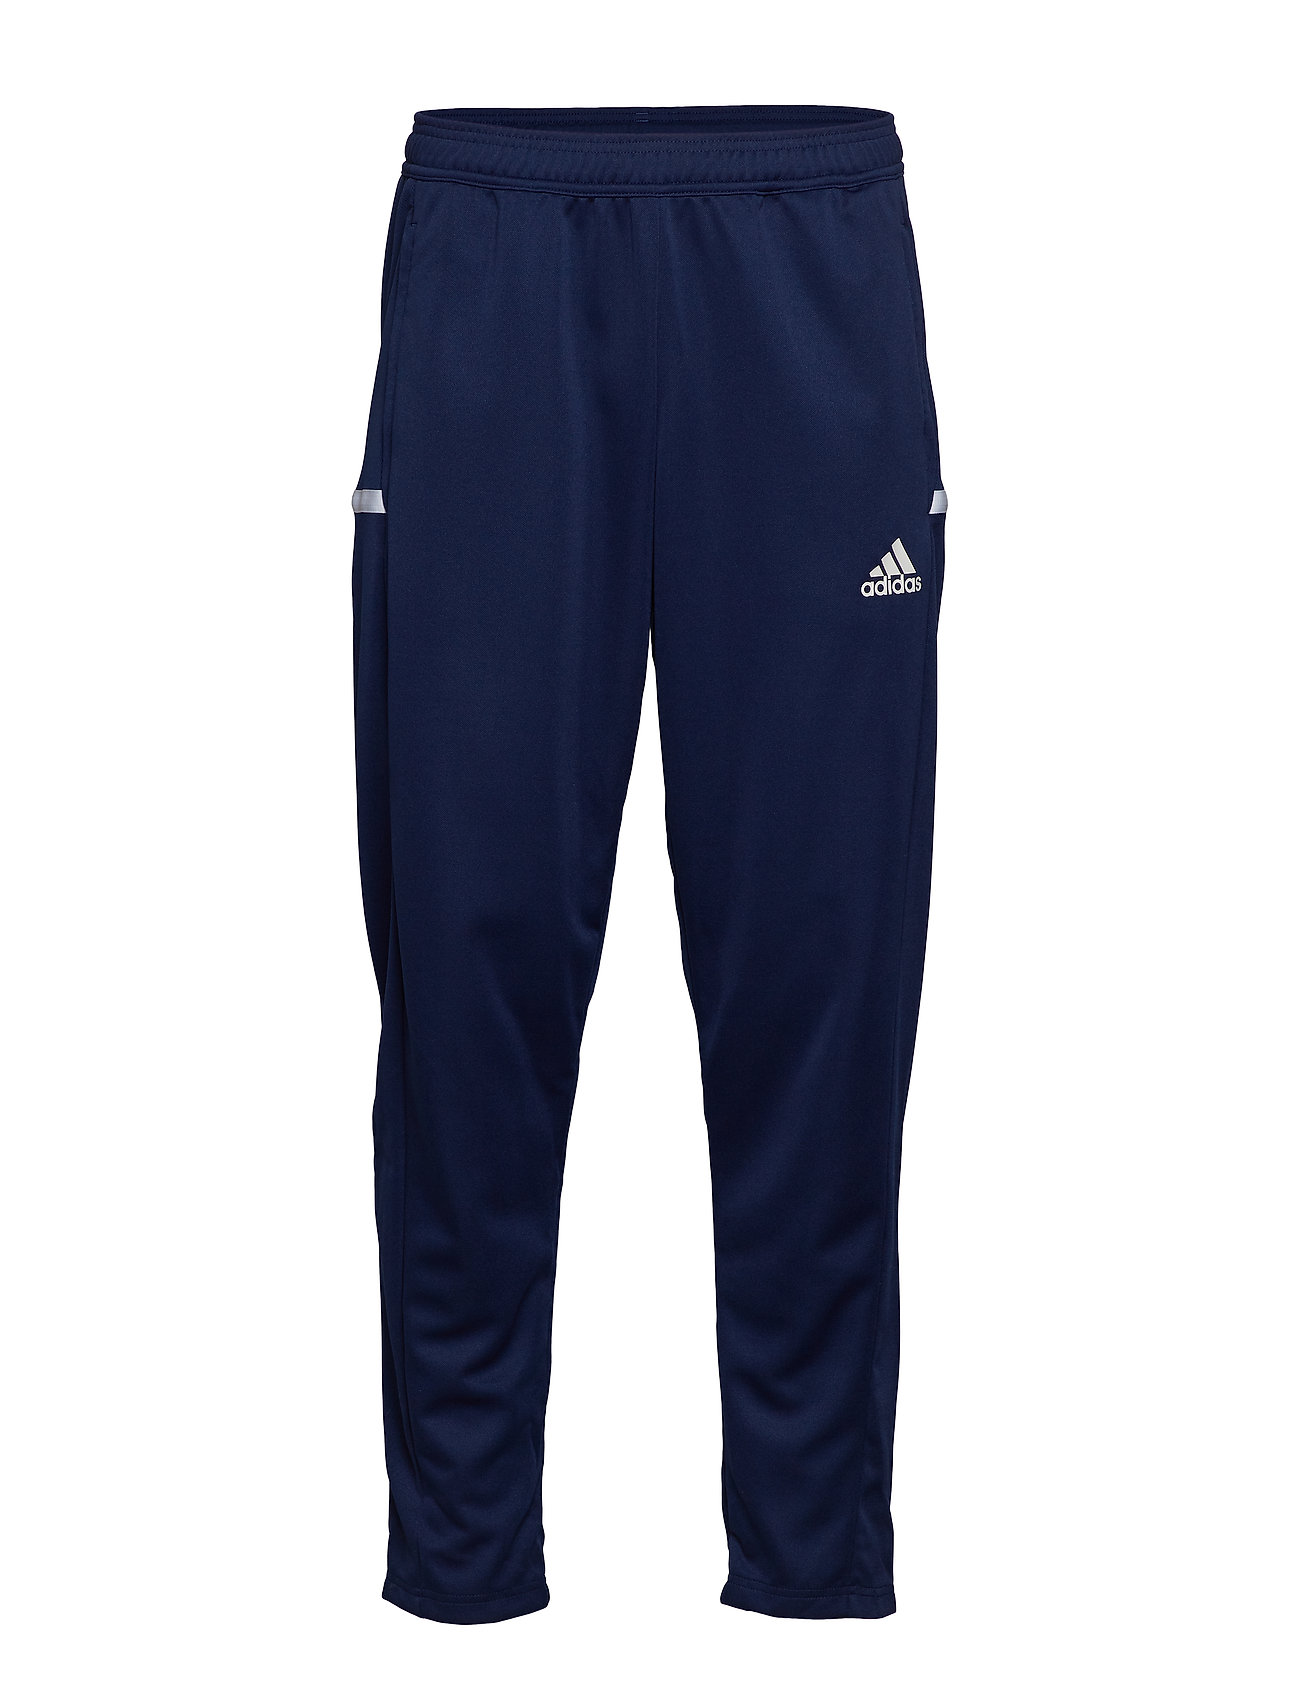 adidas Tennis T19 TRACK PANT M - NAVY